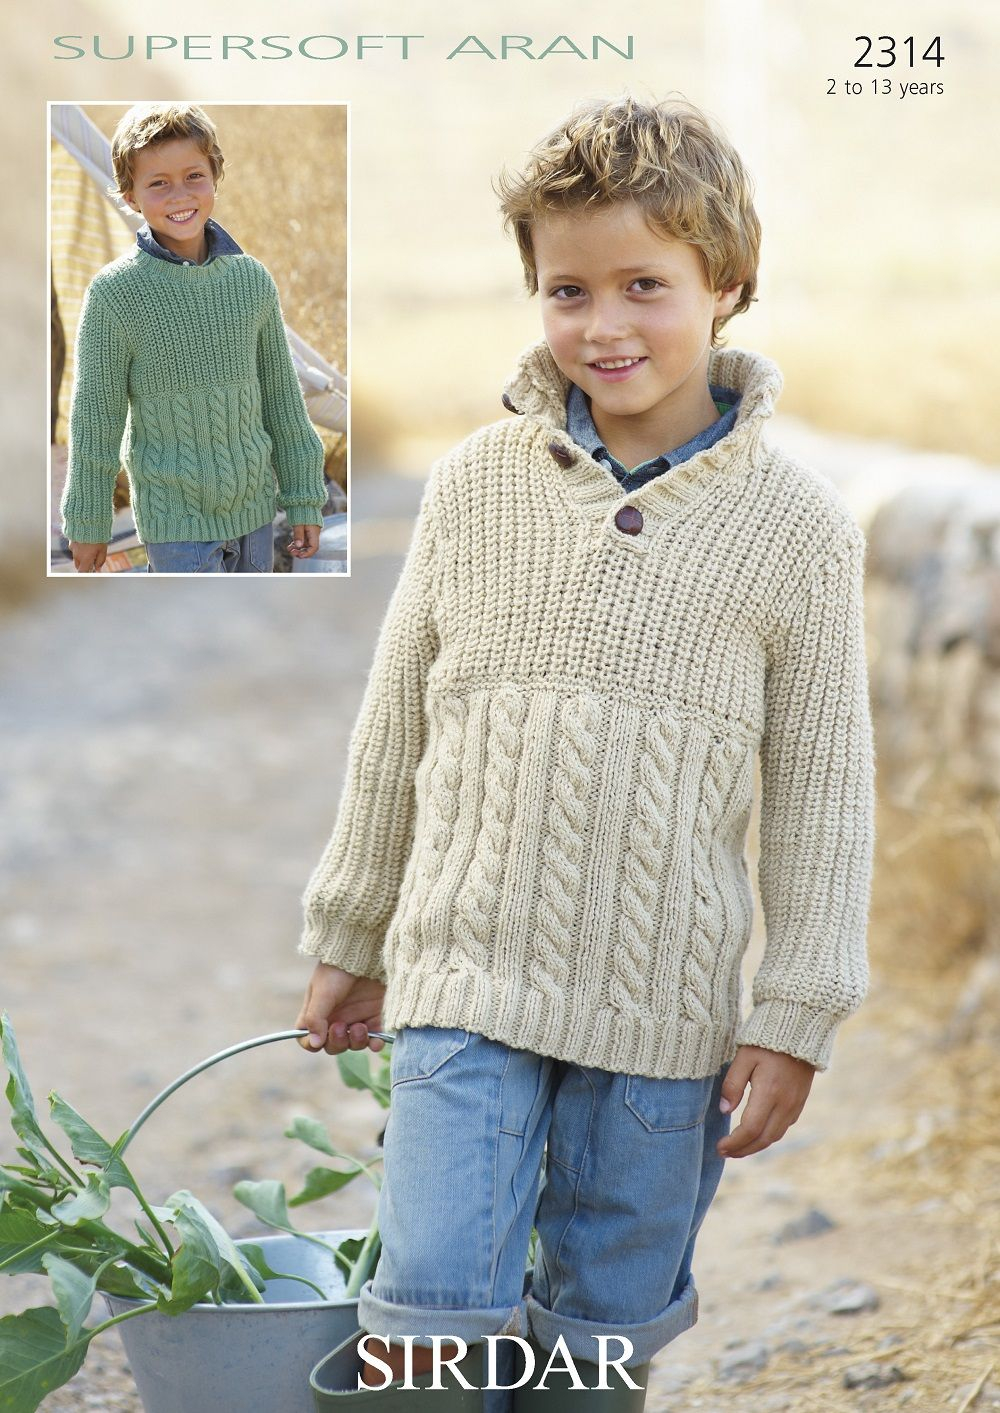 Aran Jumper Knitting Patterns Sirdar Boys Sweaters Knitting Pattern In Supersoft Aran 2314p Pdf